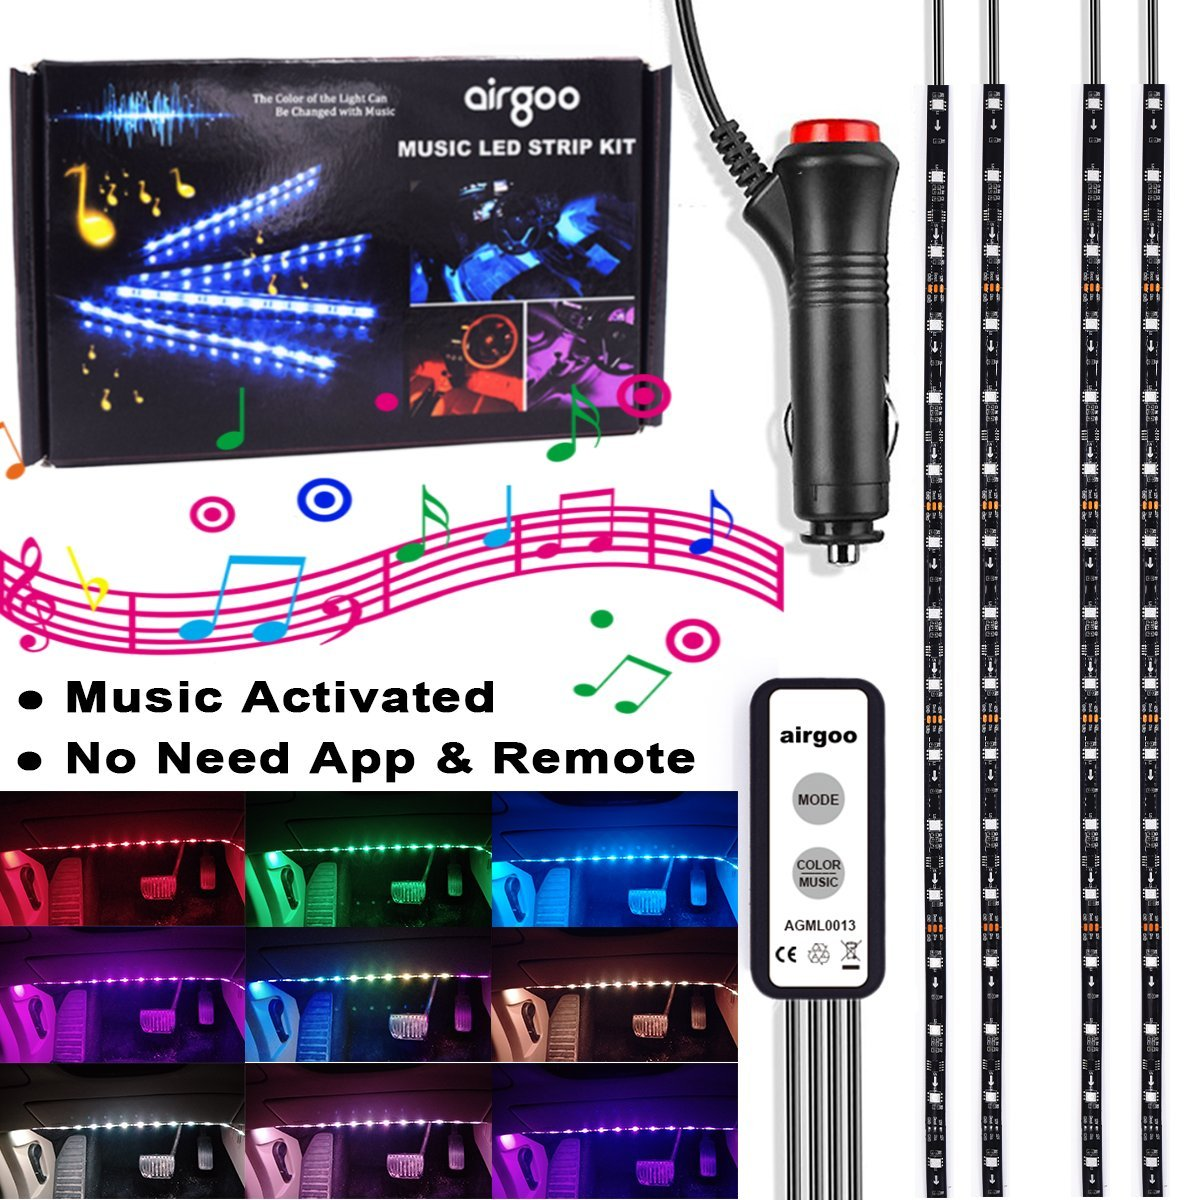 Rainbow Car LED Strip Light - Music DreamColor Interior Led Lights, Waterproof Music Under Dash Lighting Kits, Single Wire Controller Unique Colorful Dynamic Car Interior Lights, Car Charger Included by airgoo